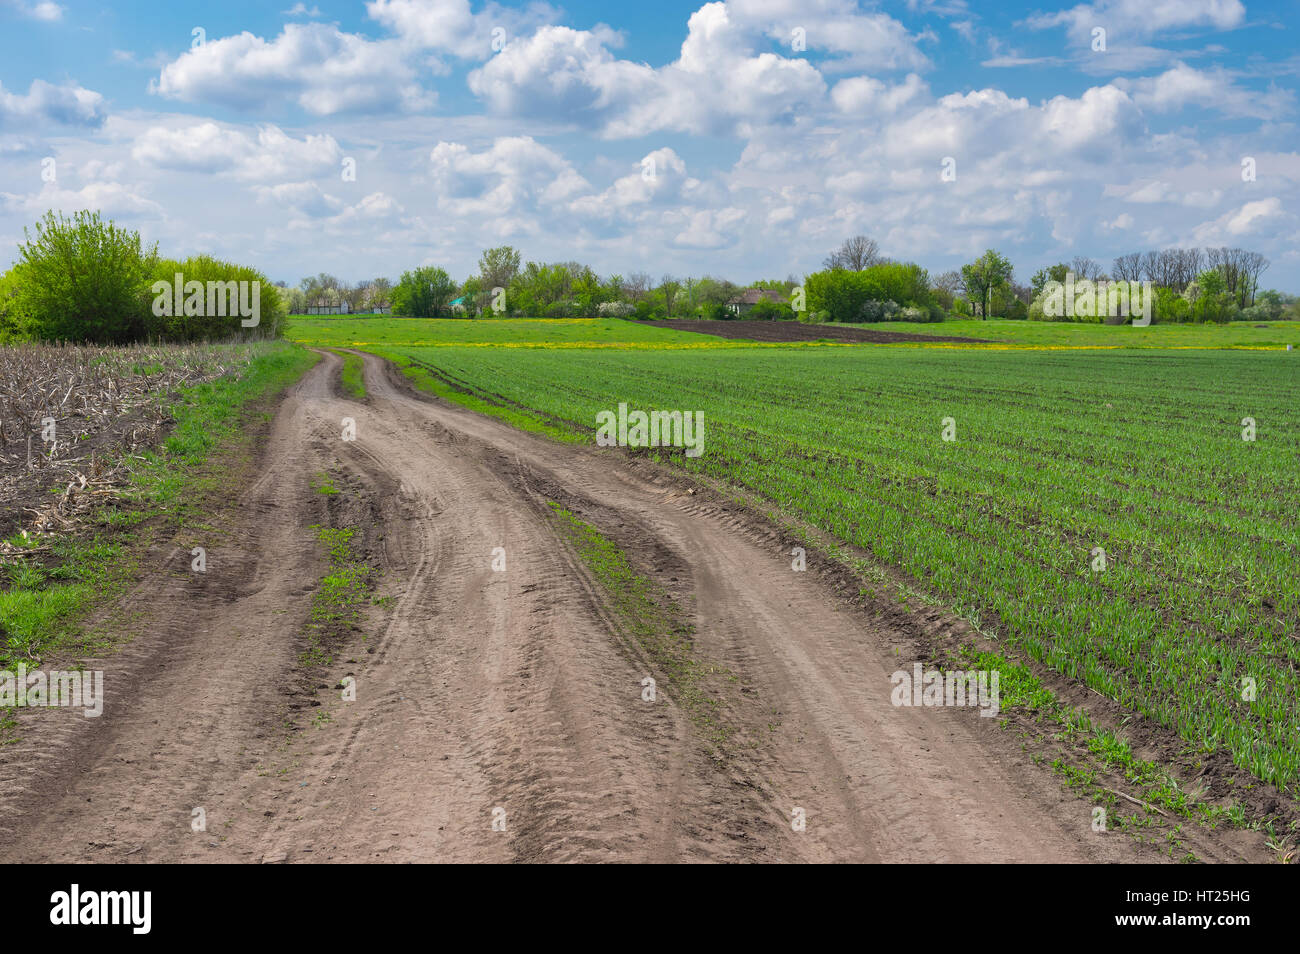 Spring landscape with an earth road near agricultural field in Dmukhailivka village, Dnipropetrovsk oblast, Ukraine - Stock Image